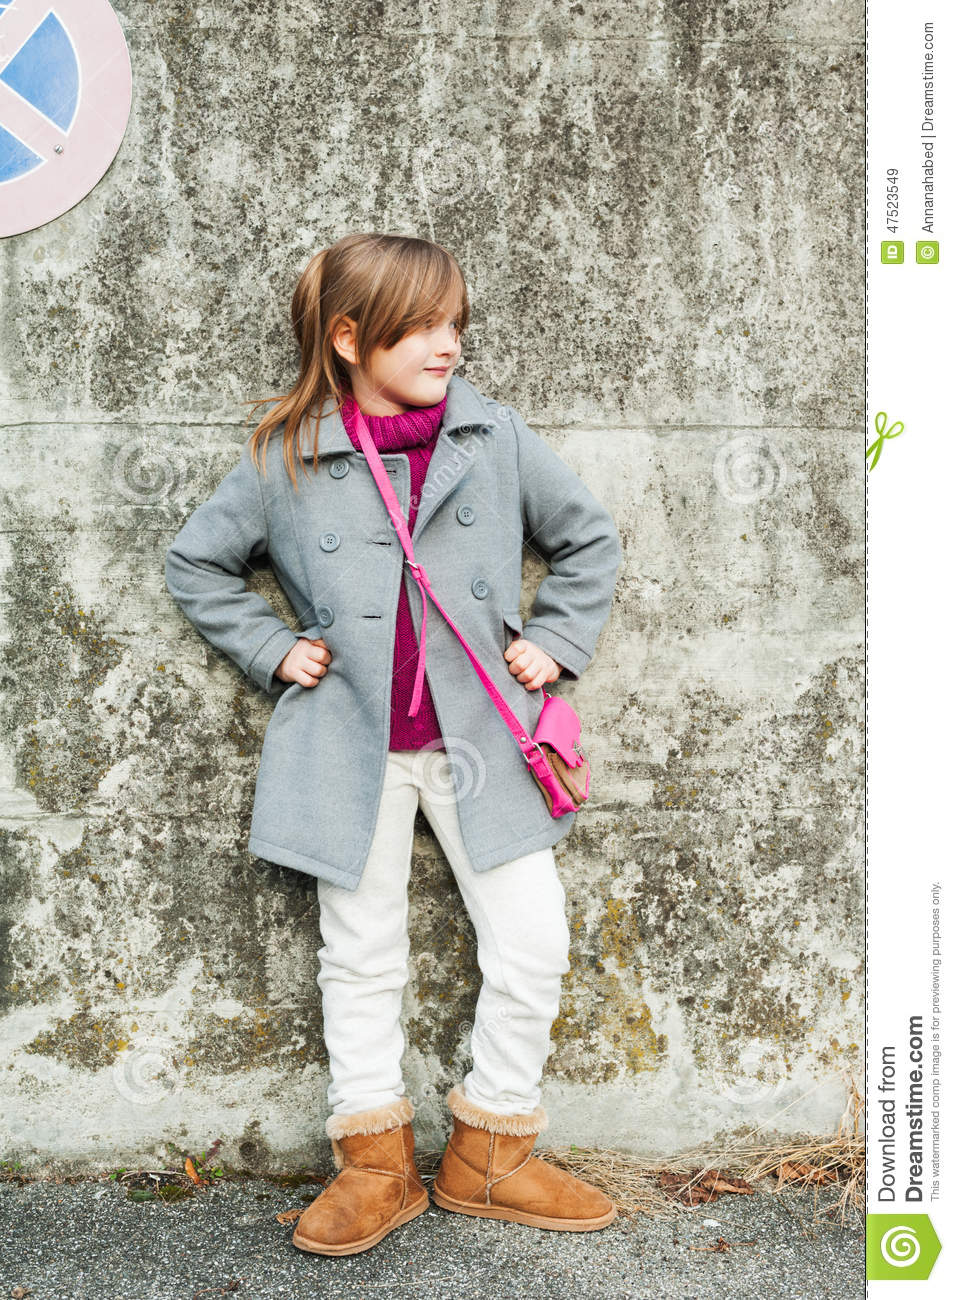 Beautiful Grey Waterproof Flooring Ideas For Living Room: Outdoor Portrait Of A Cute Little Girl Stock Image